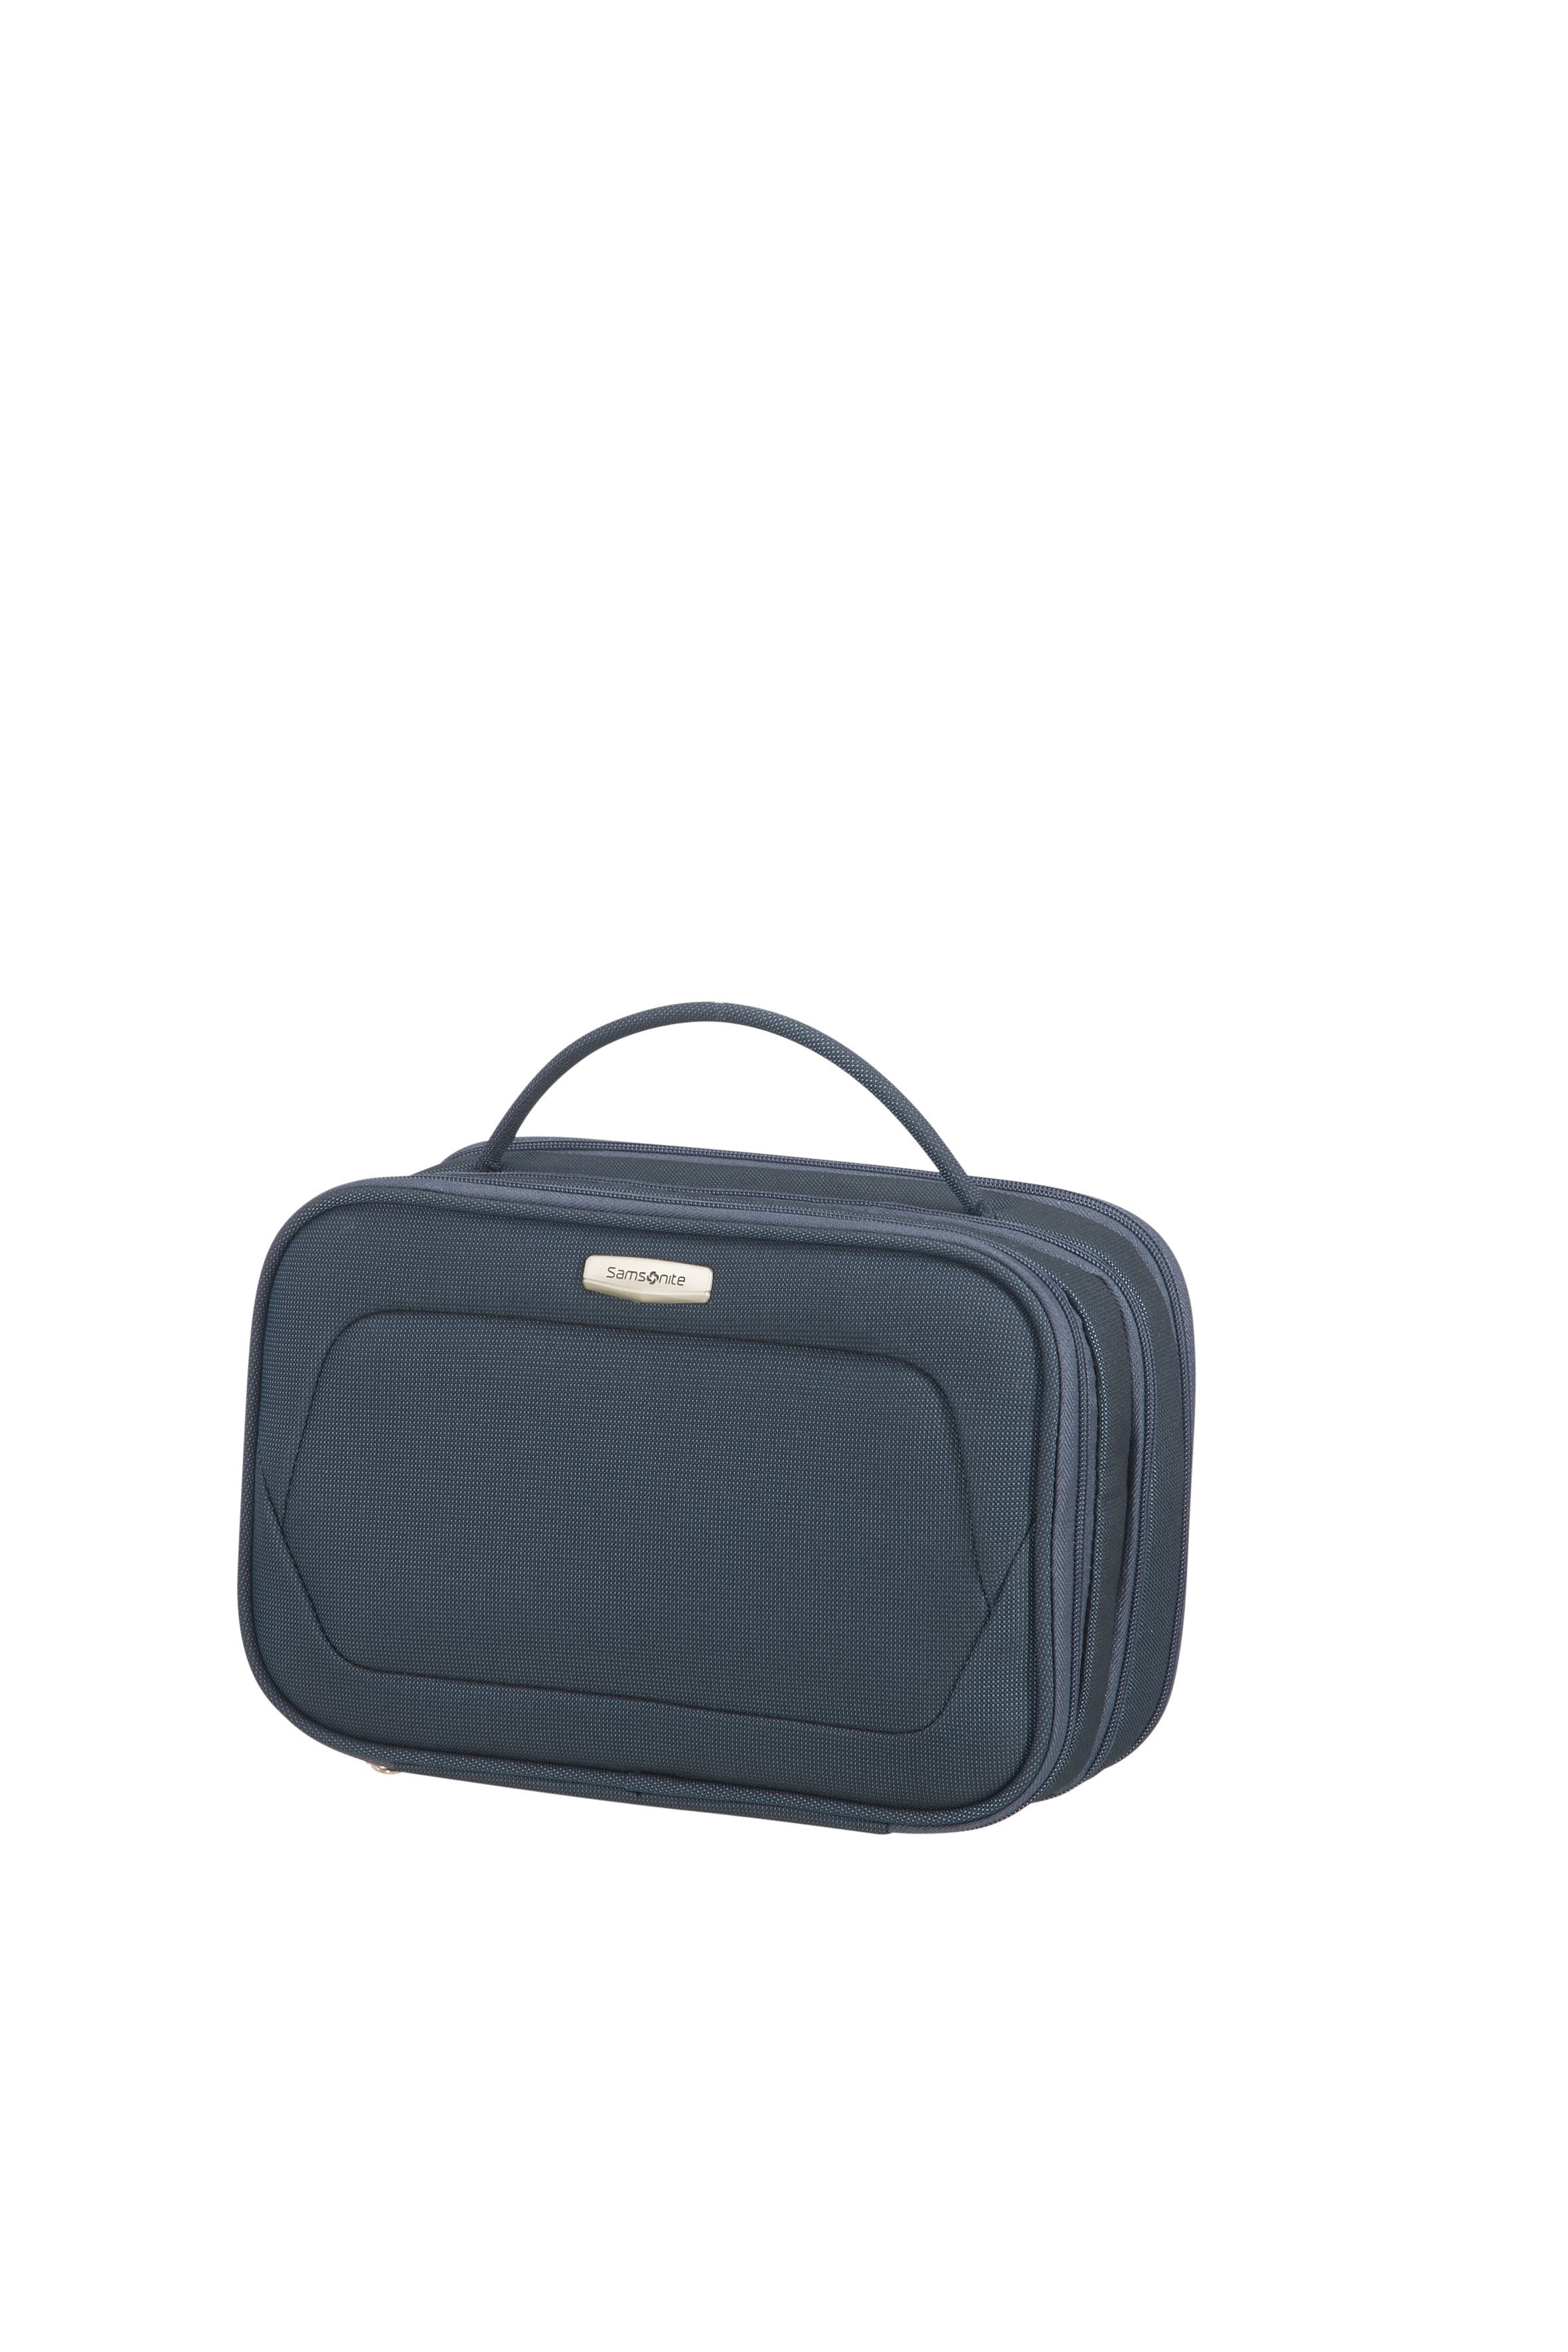 Samsonite Spark SNG Toilet Kit Blue